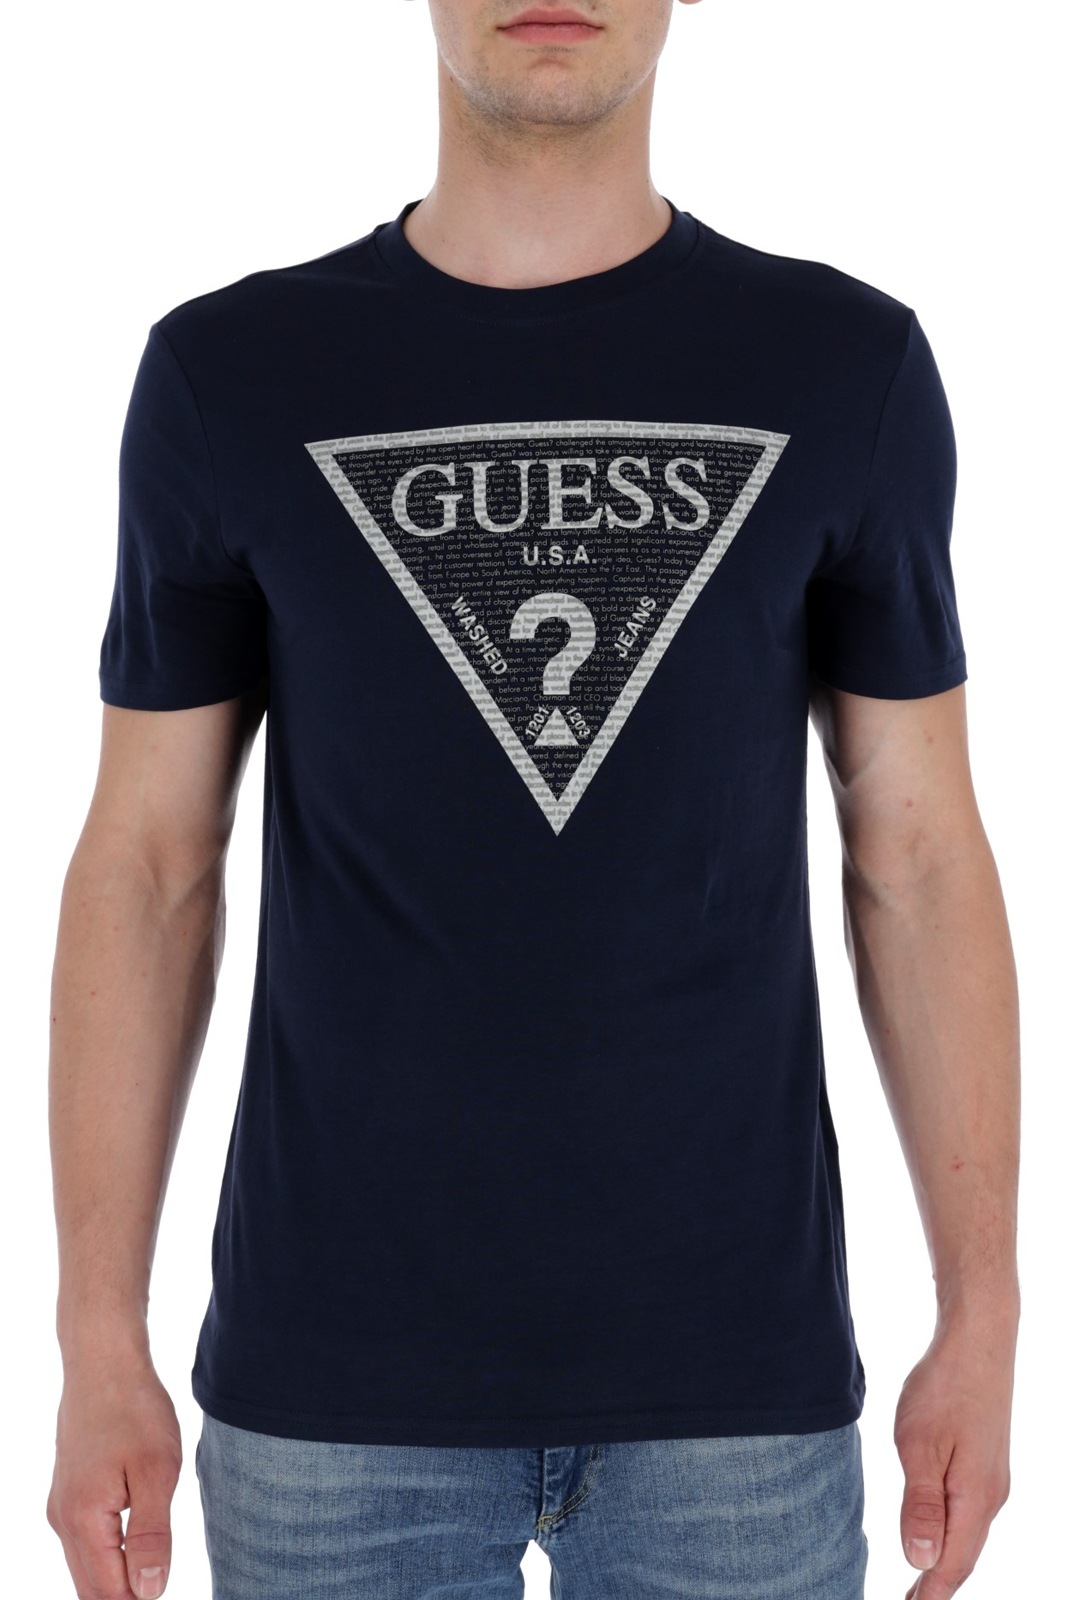 T-S manches courtes  Guess jeans M83I03 I3Z00 G720 BLUE NAVY